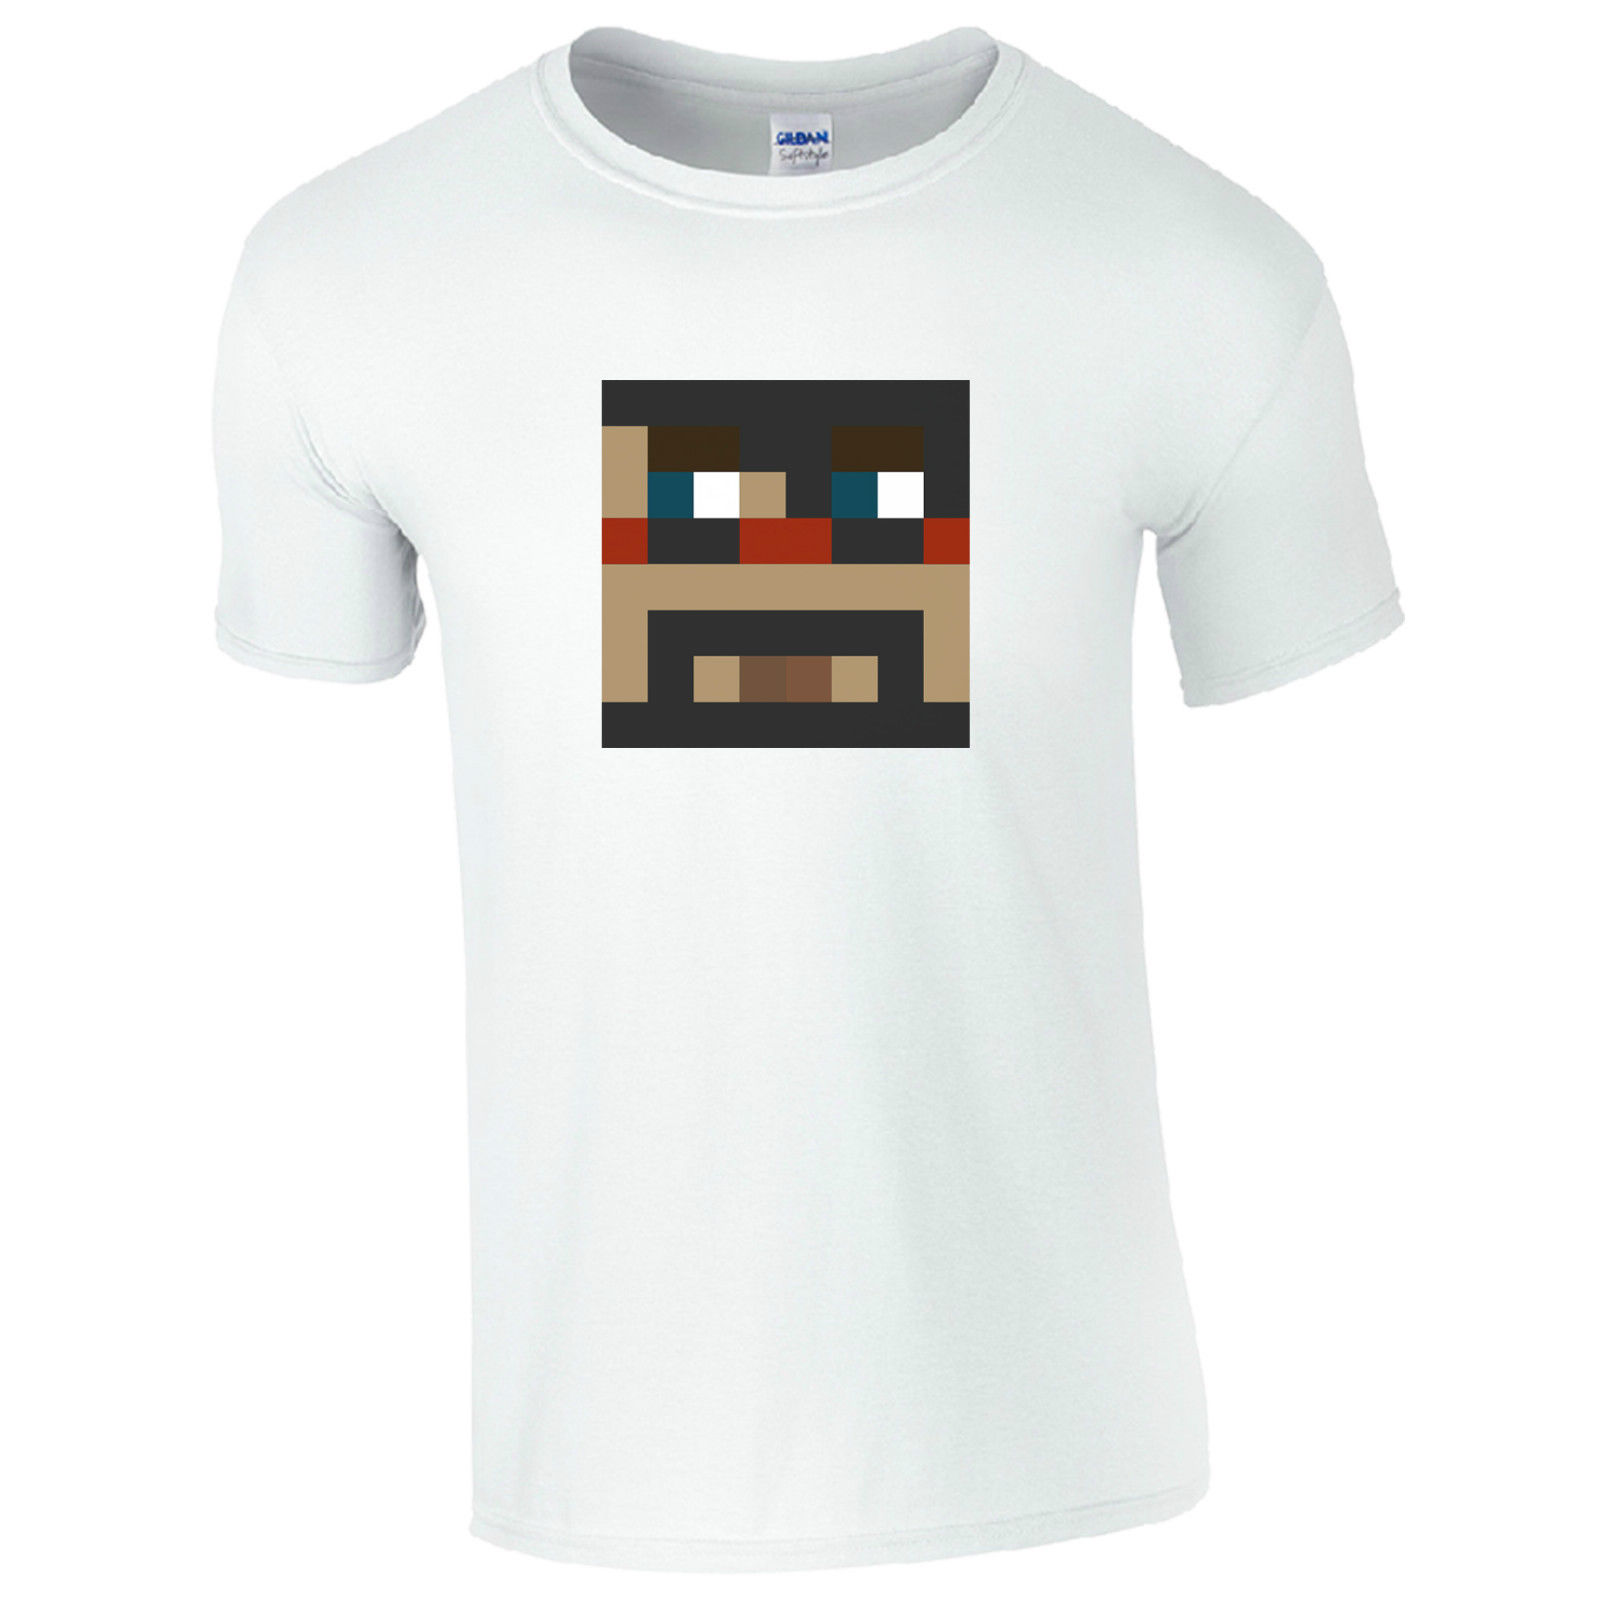 Design t shirt youtube - Captainsparklez T Shirt Fun Cool Cs Youtube Vid O Gamer Fan Enfants Hommes Cadeau Top